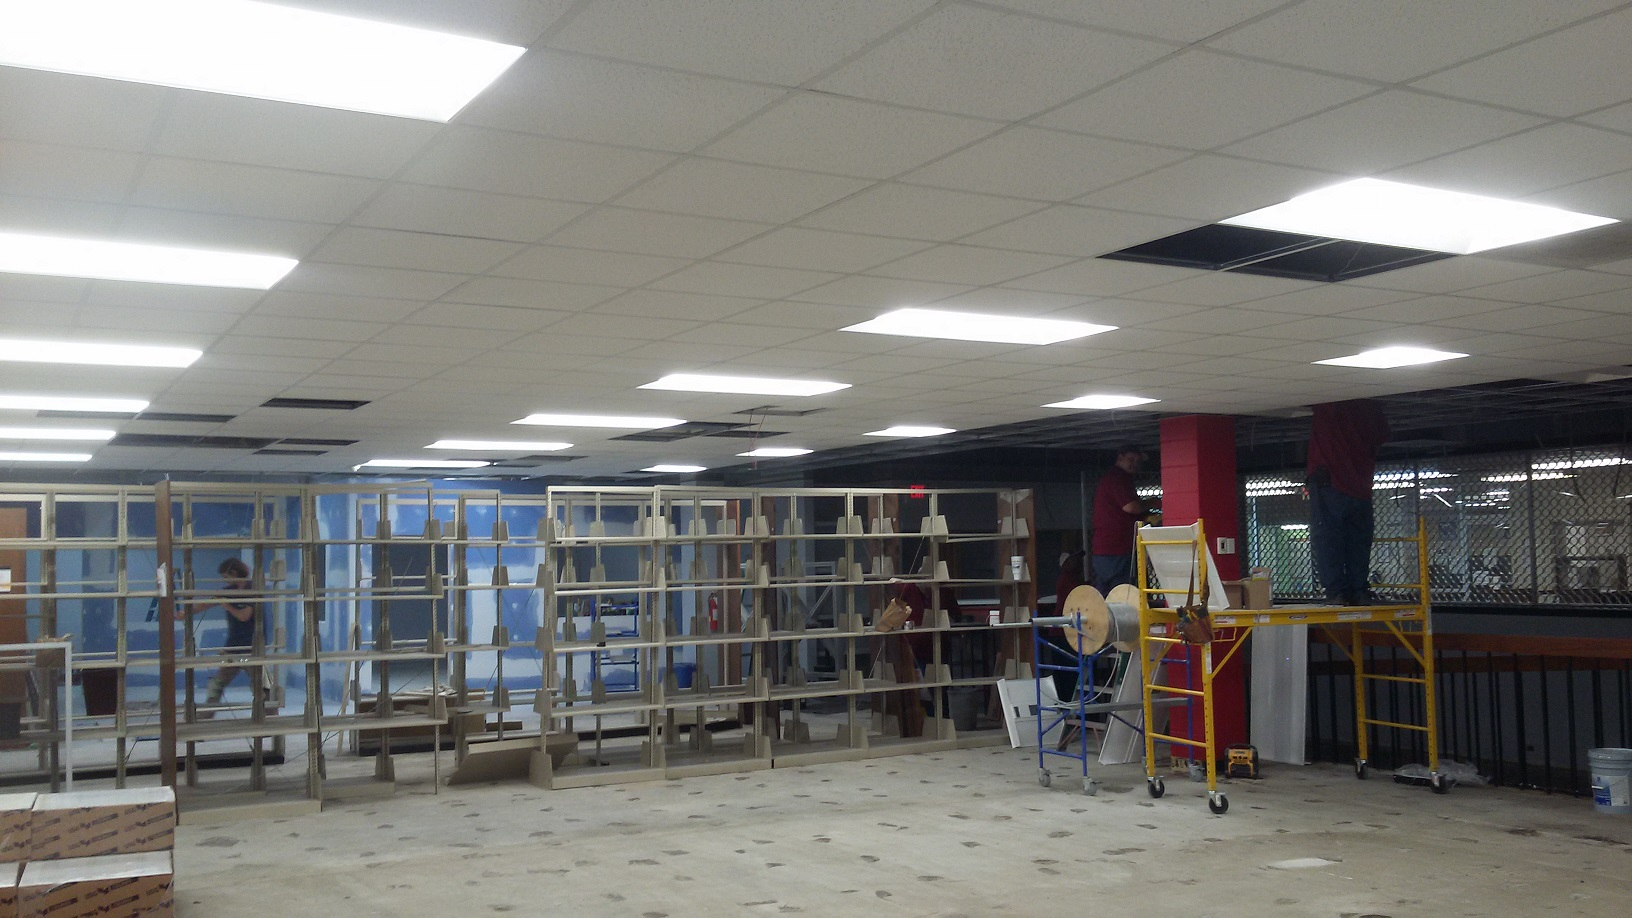 New Library ceiling